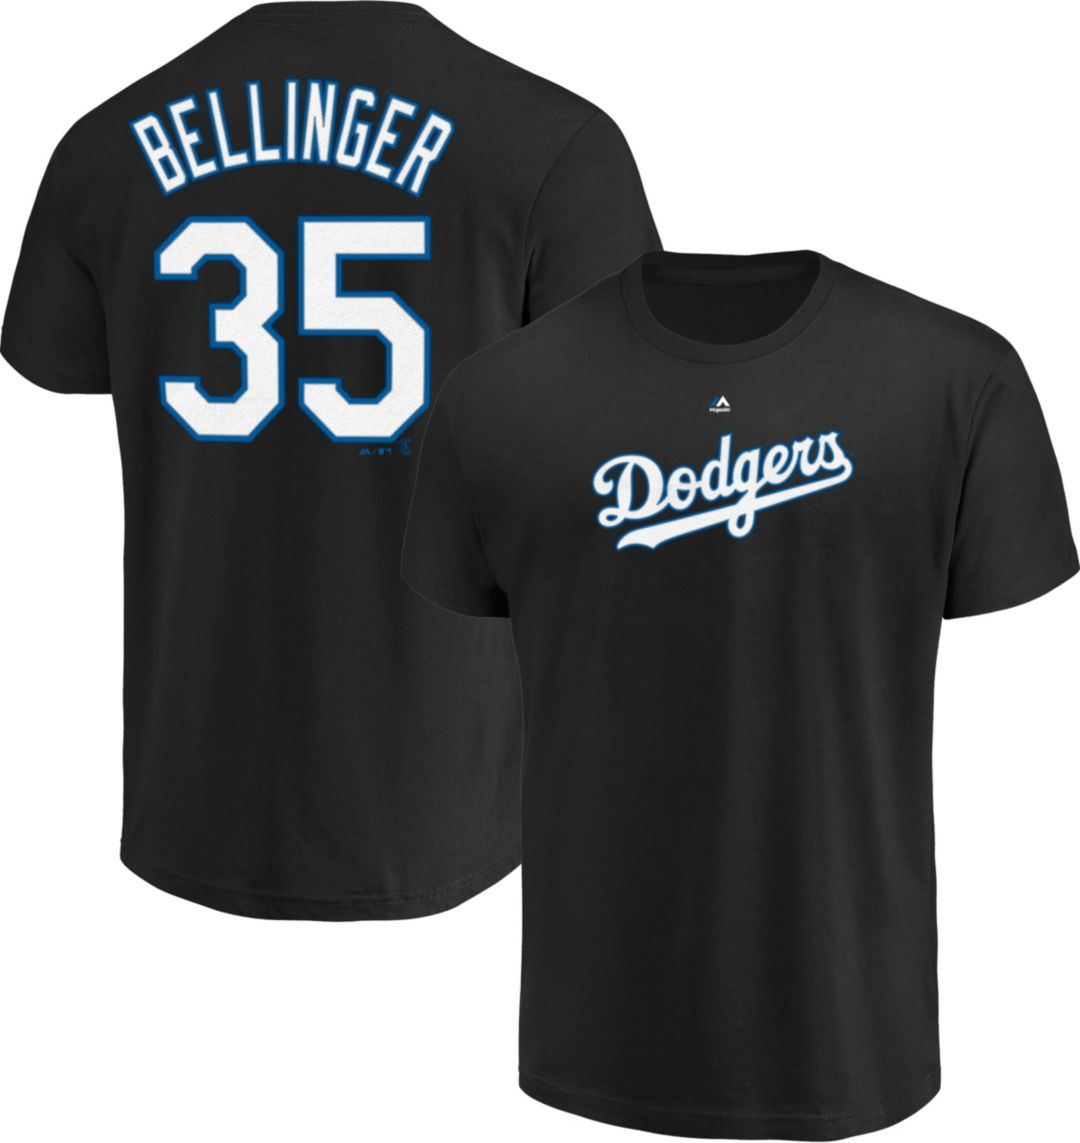 huge discount be6d7 bf54b Majestic Youth Los Angeles Dodgers Cody Bellinger #35 Black T-Shirt